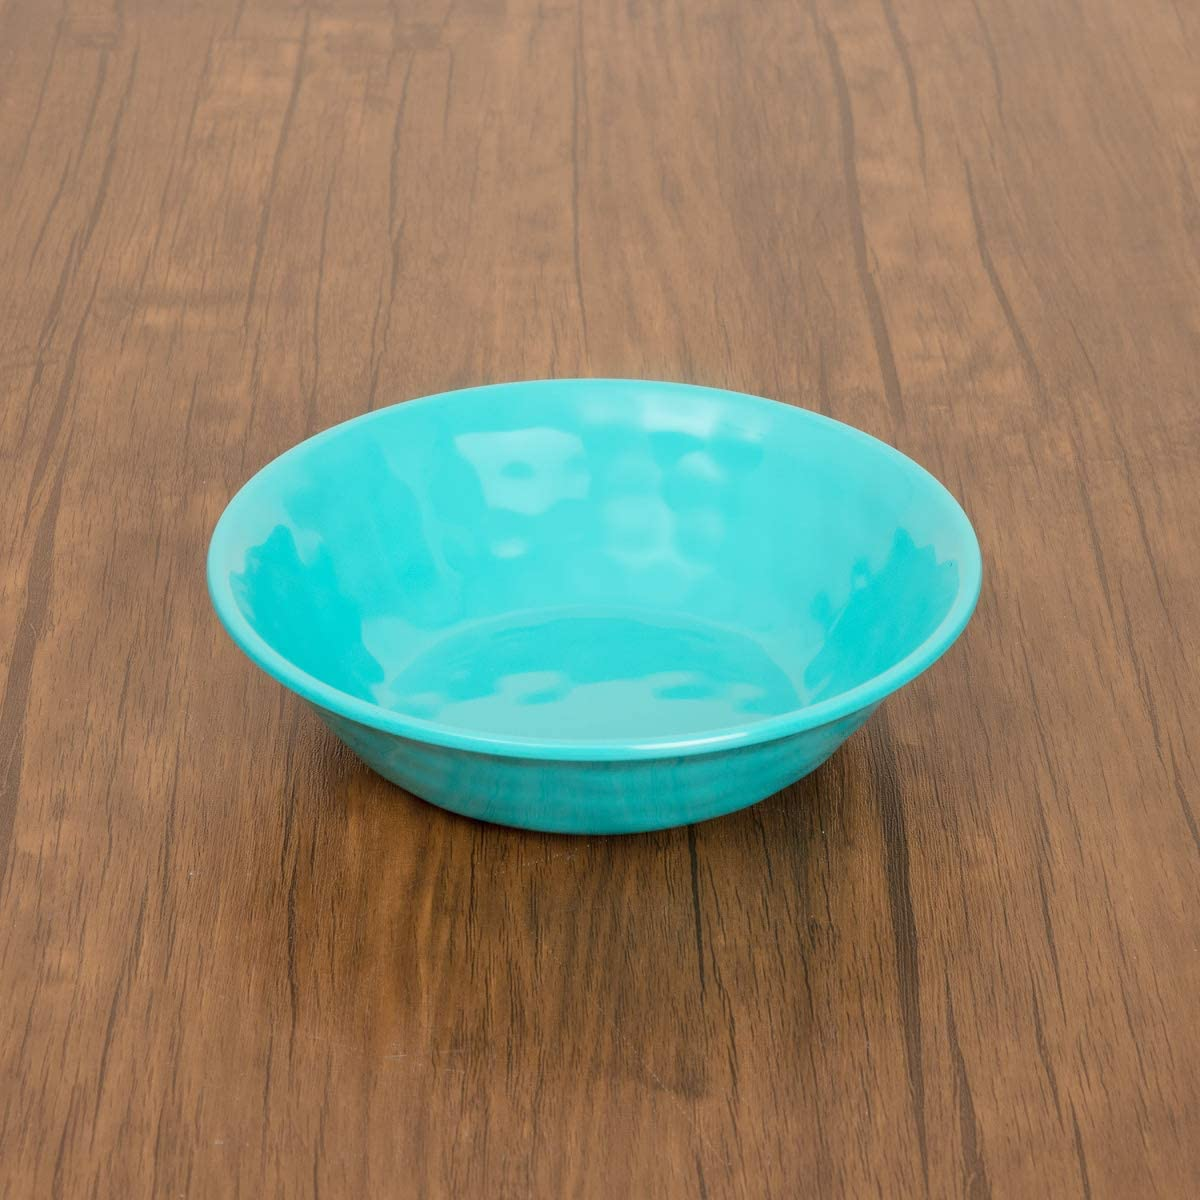 Home Centre Meadows-Madora Solid Bowl Serving Blue New mail order overseas -